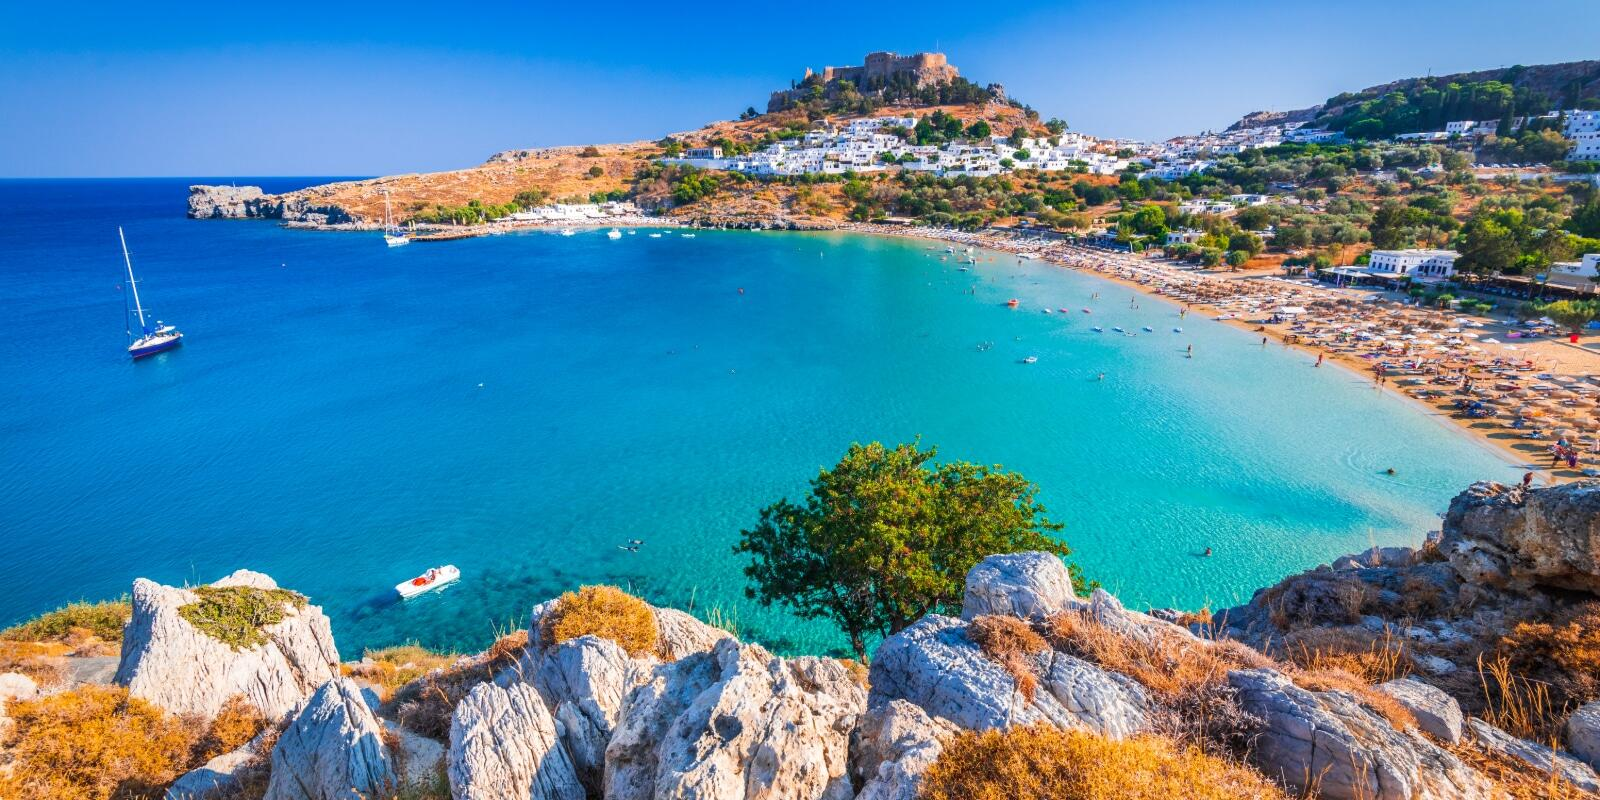 Stroll around the Dodecanese on a 15m boat - boarding in Kos or Leros